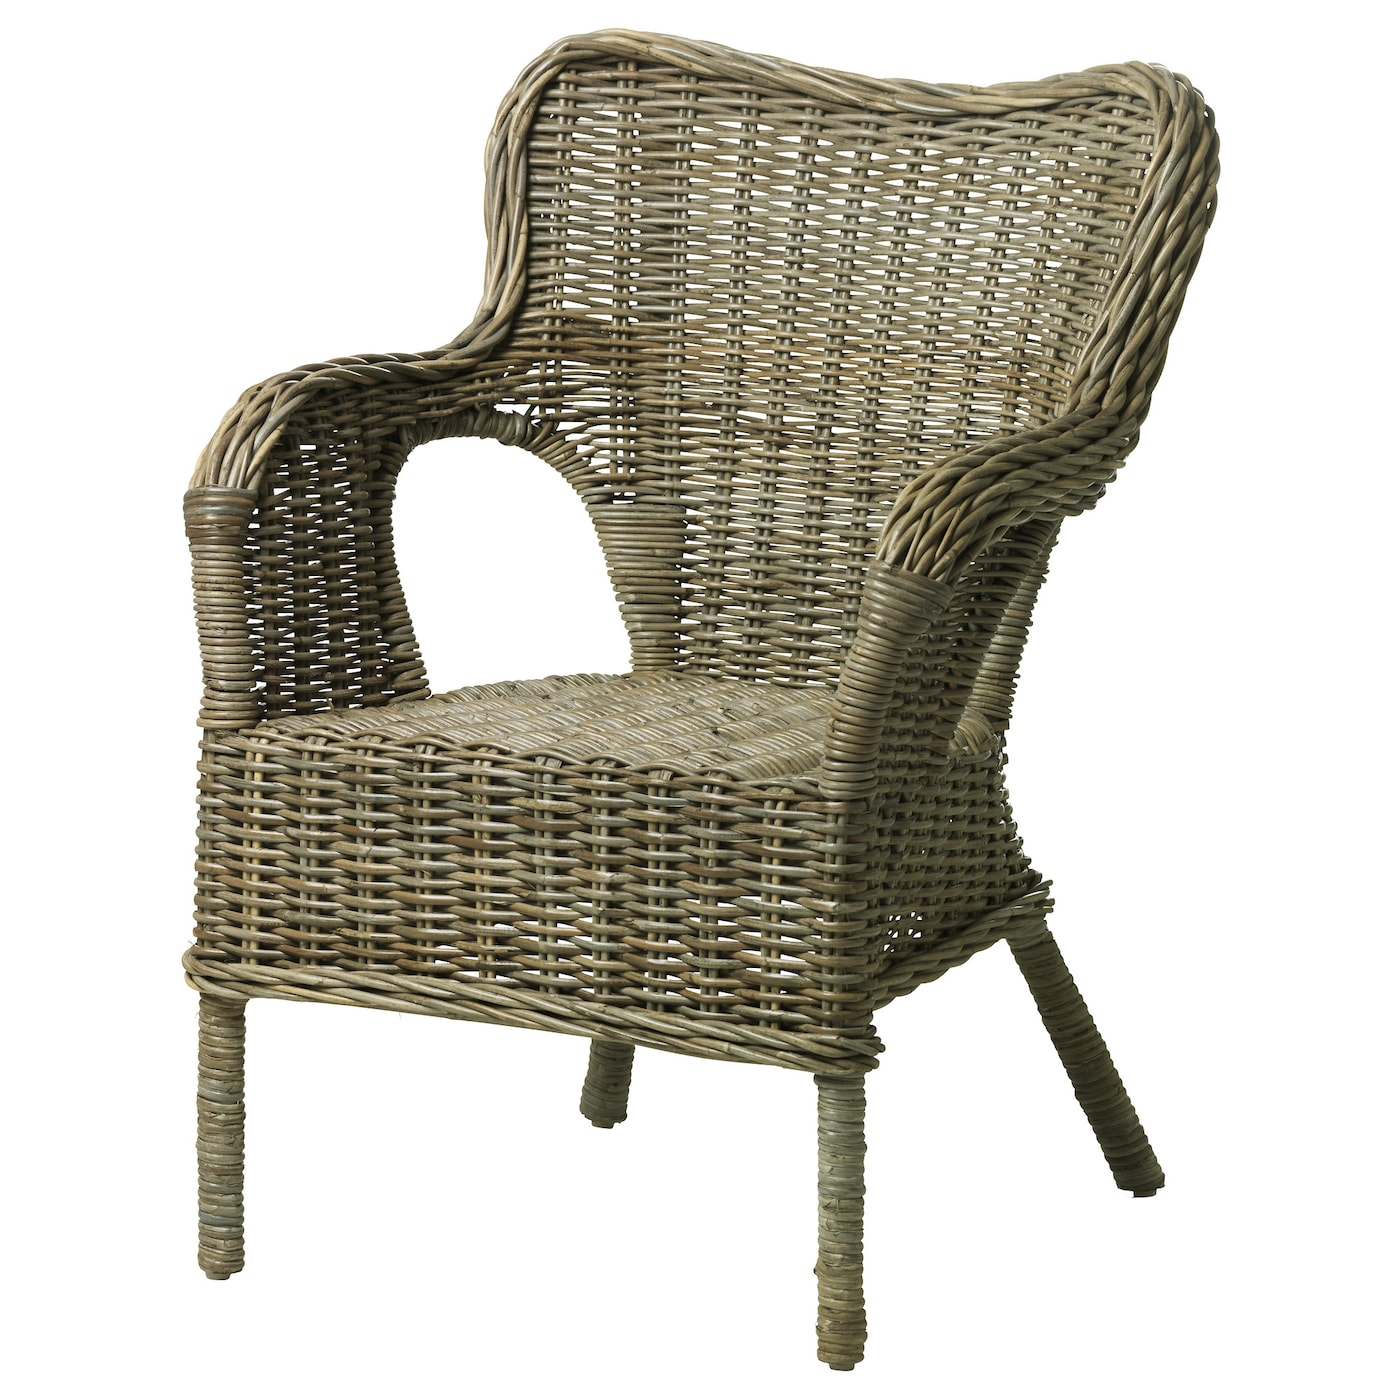 Rattan & Wicker Chairs